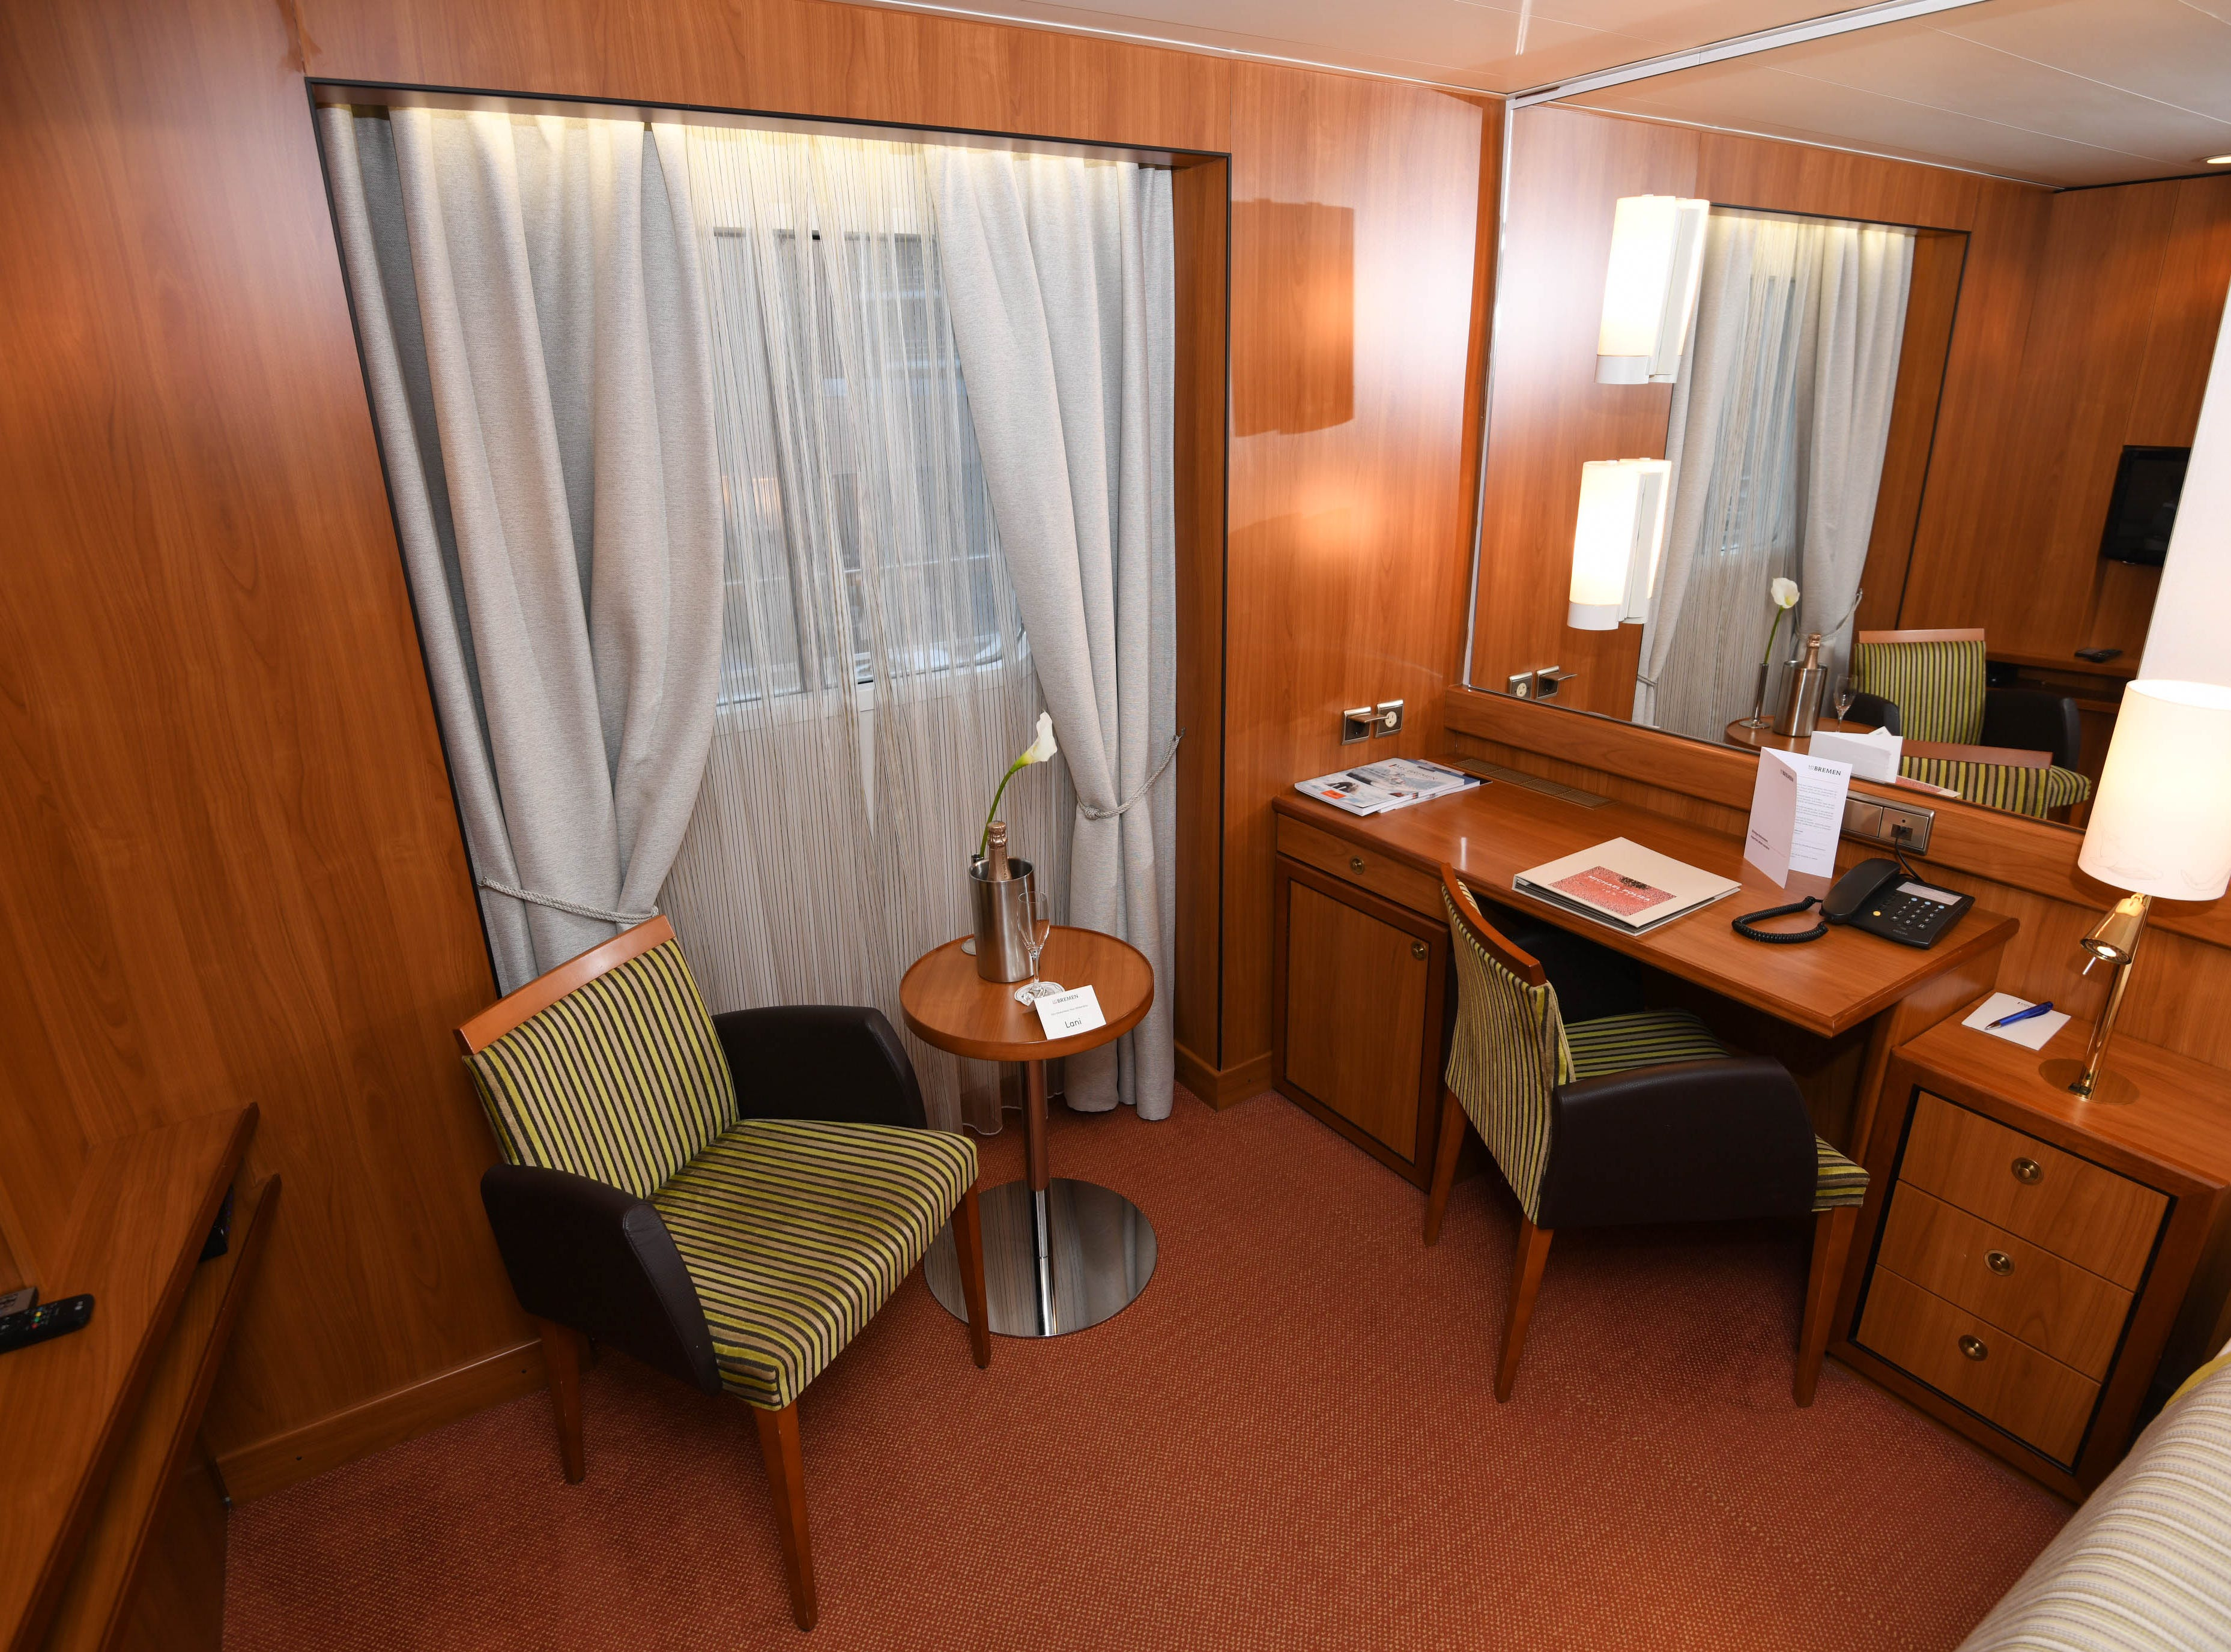 Bremen cabins also feature a desk area with a second chair and side table.